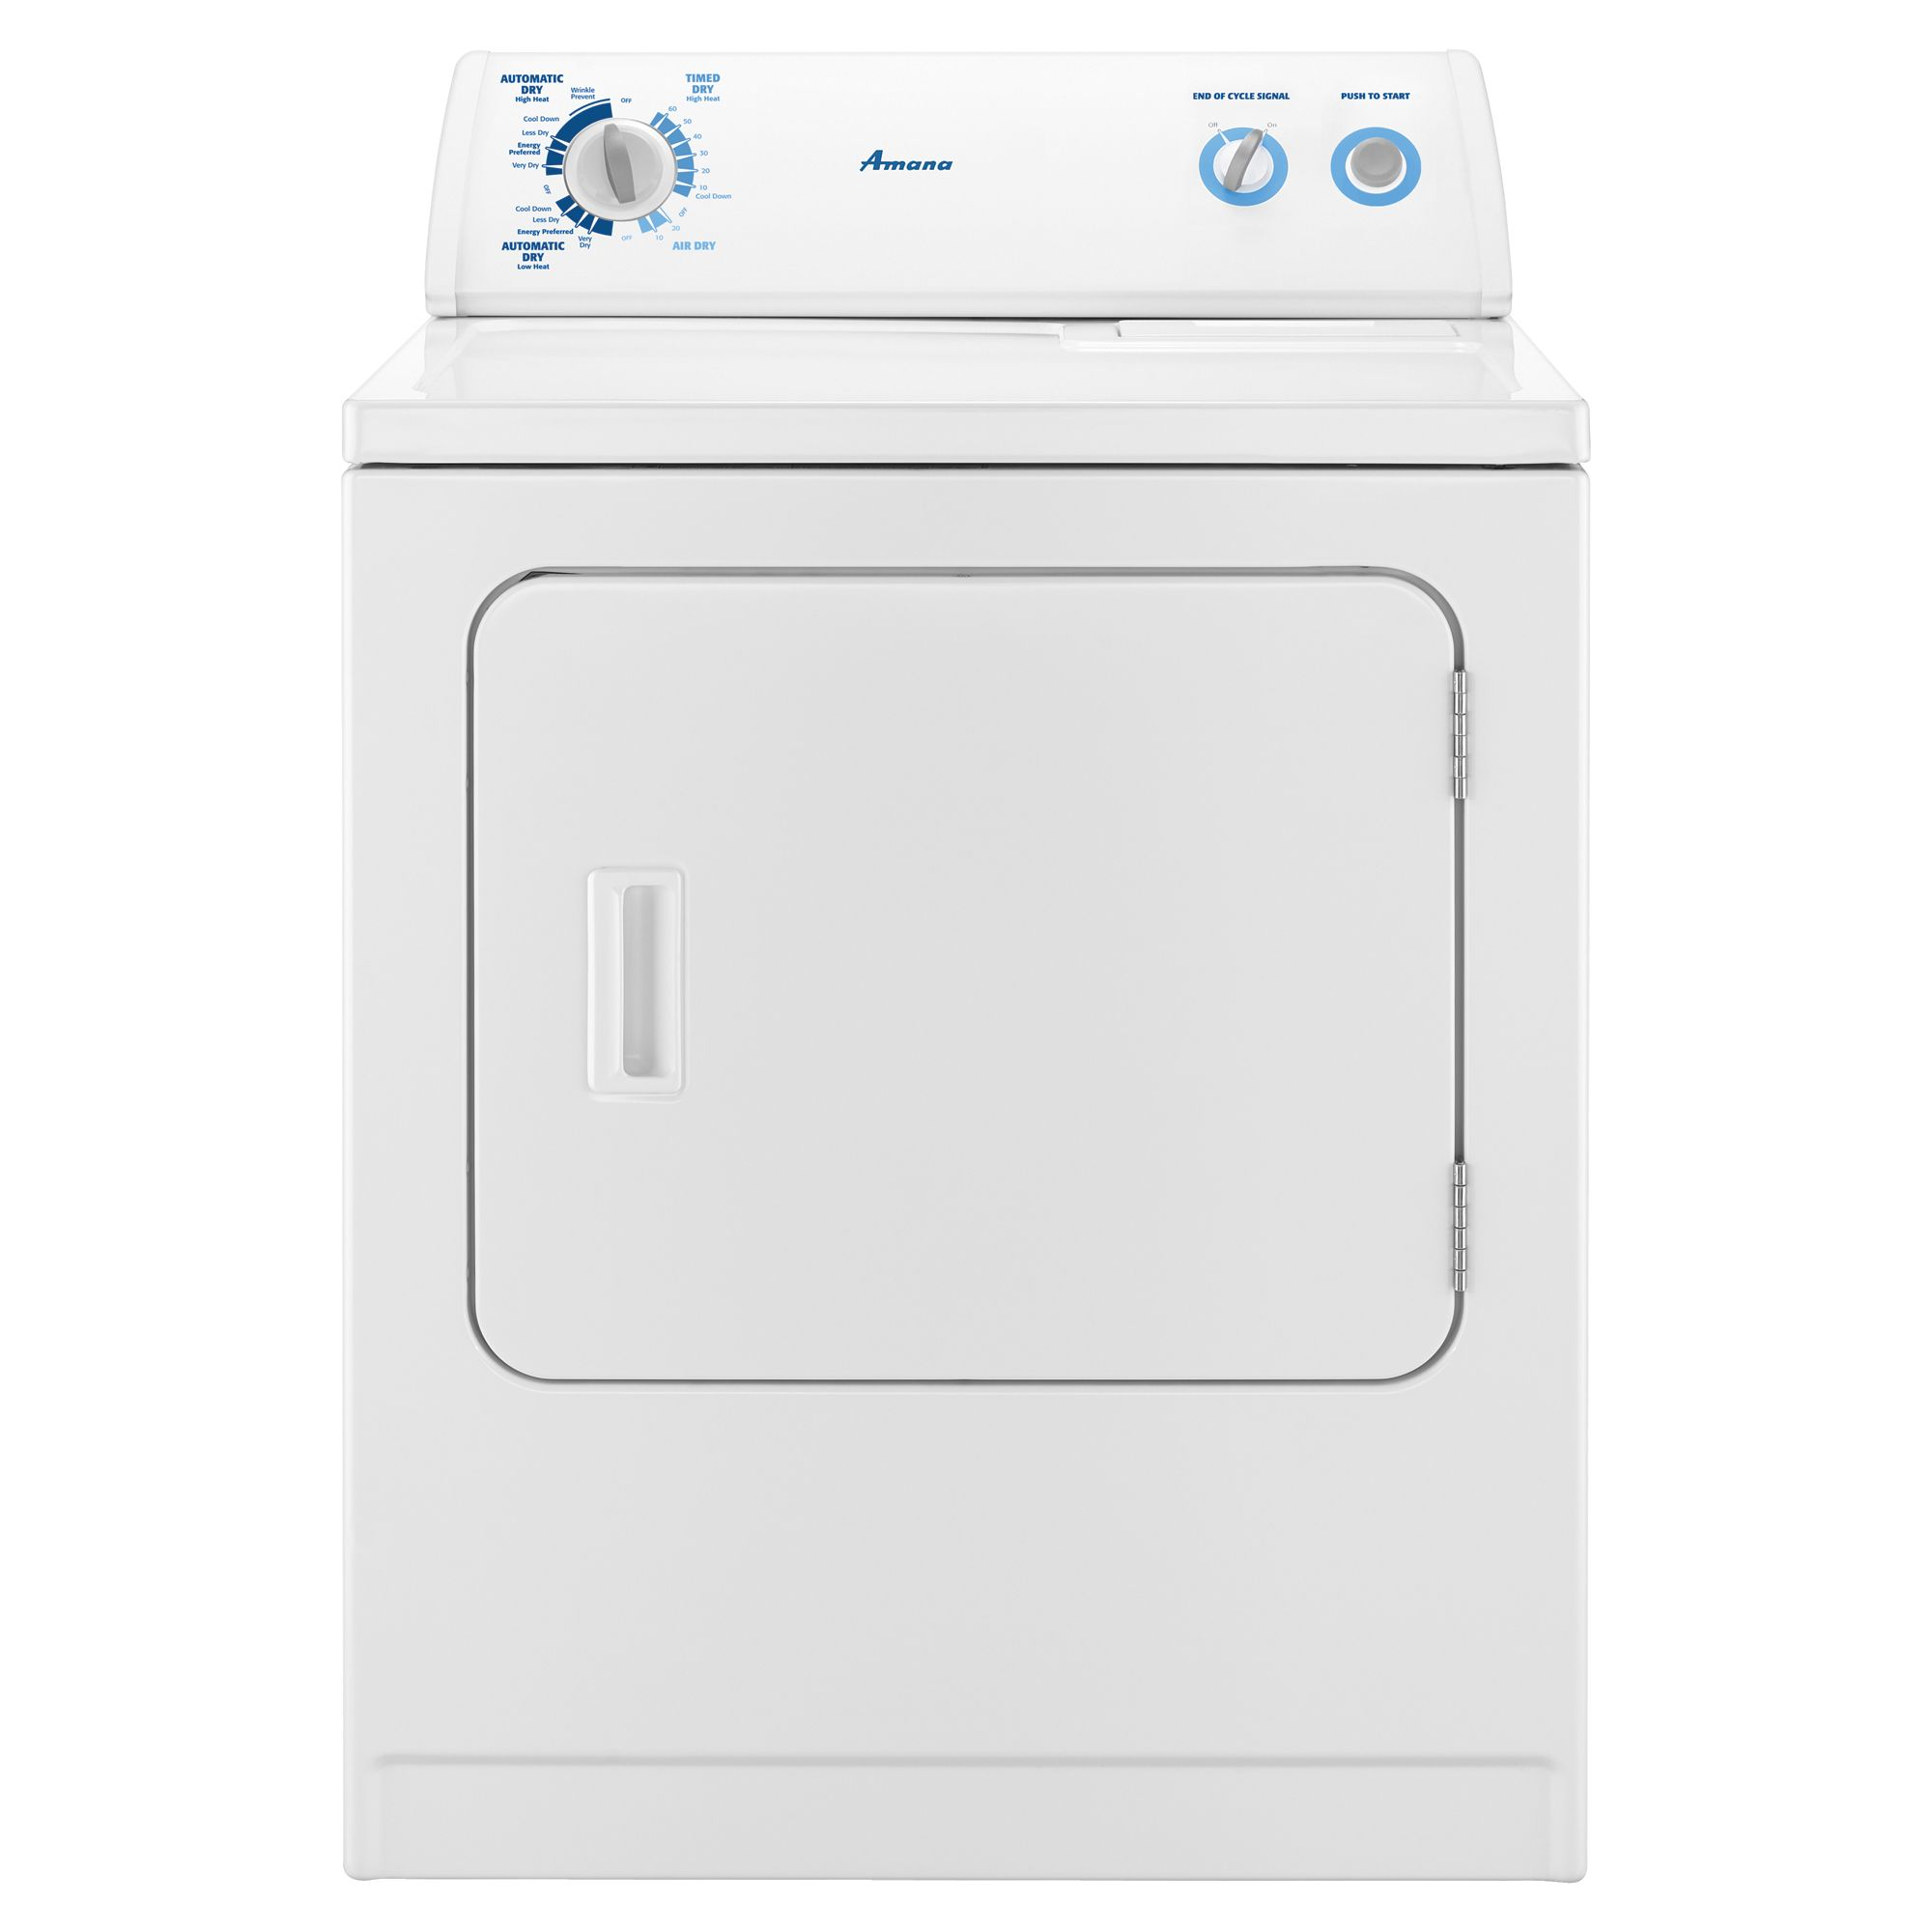 amana model ned4500vq2 residential dryer genuine parts rh searspartsdirect com amana appliances manuals axp22t amana fridge manual xrss287bb